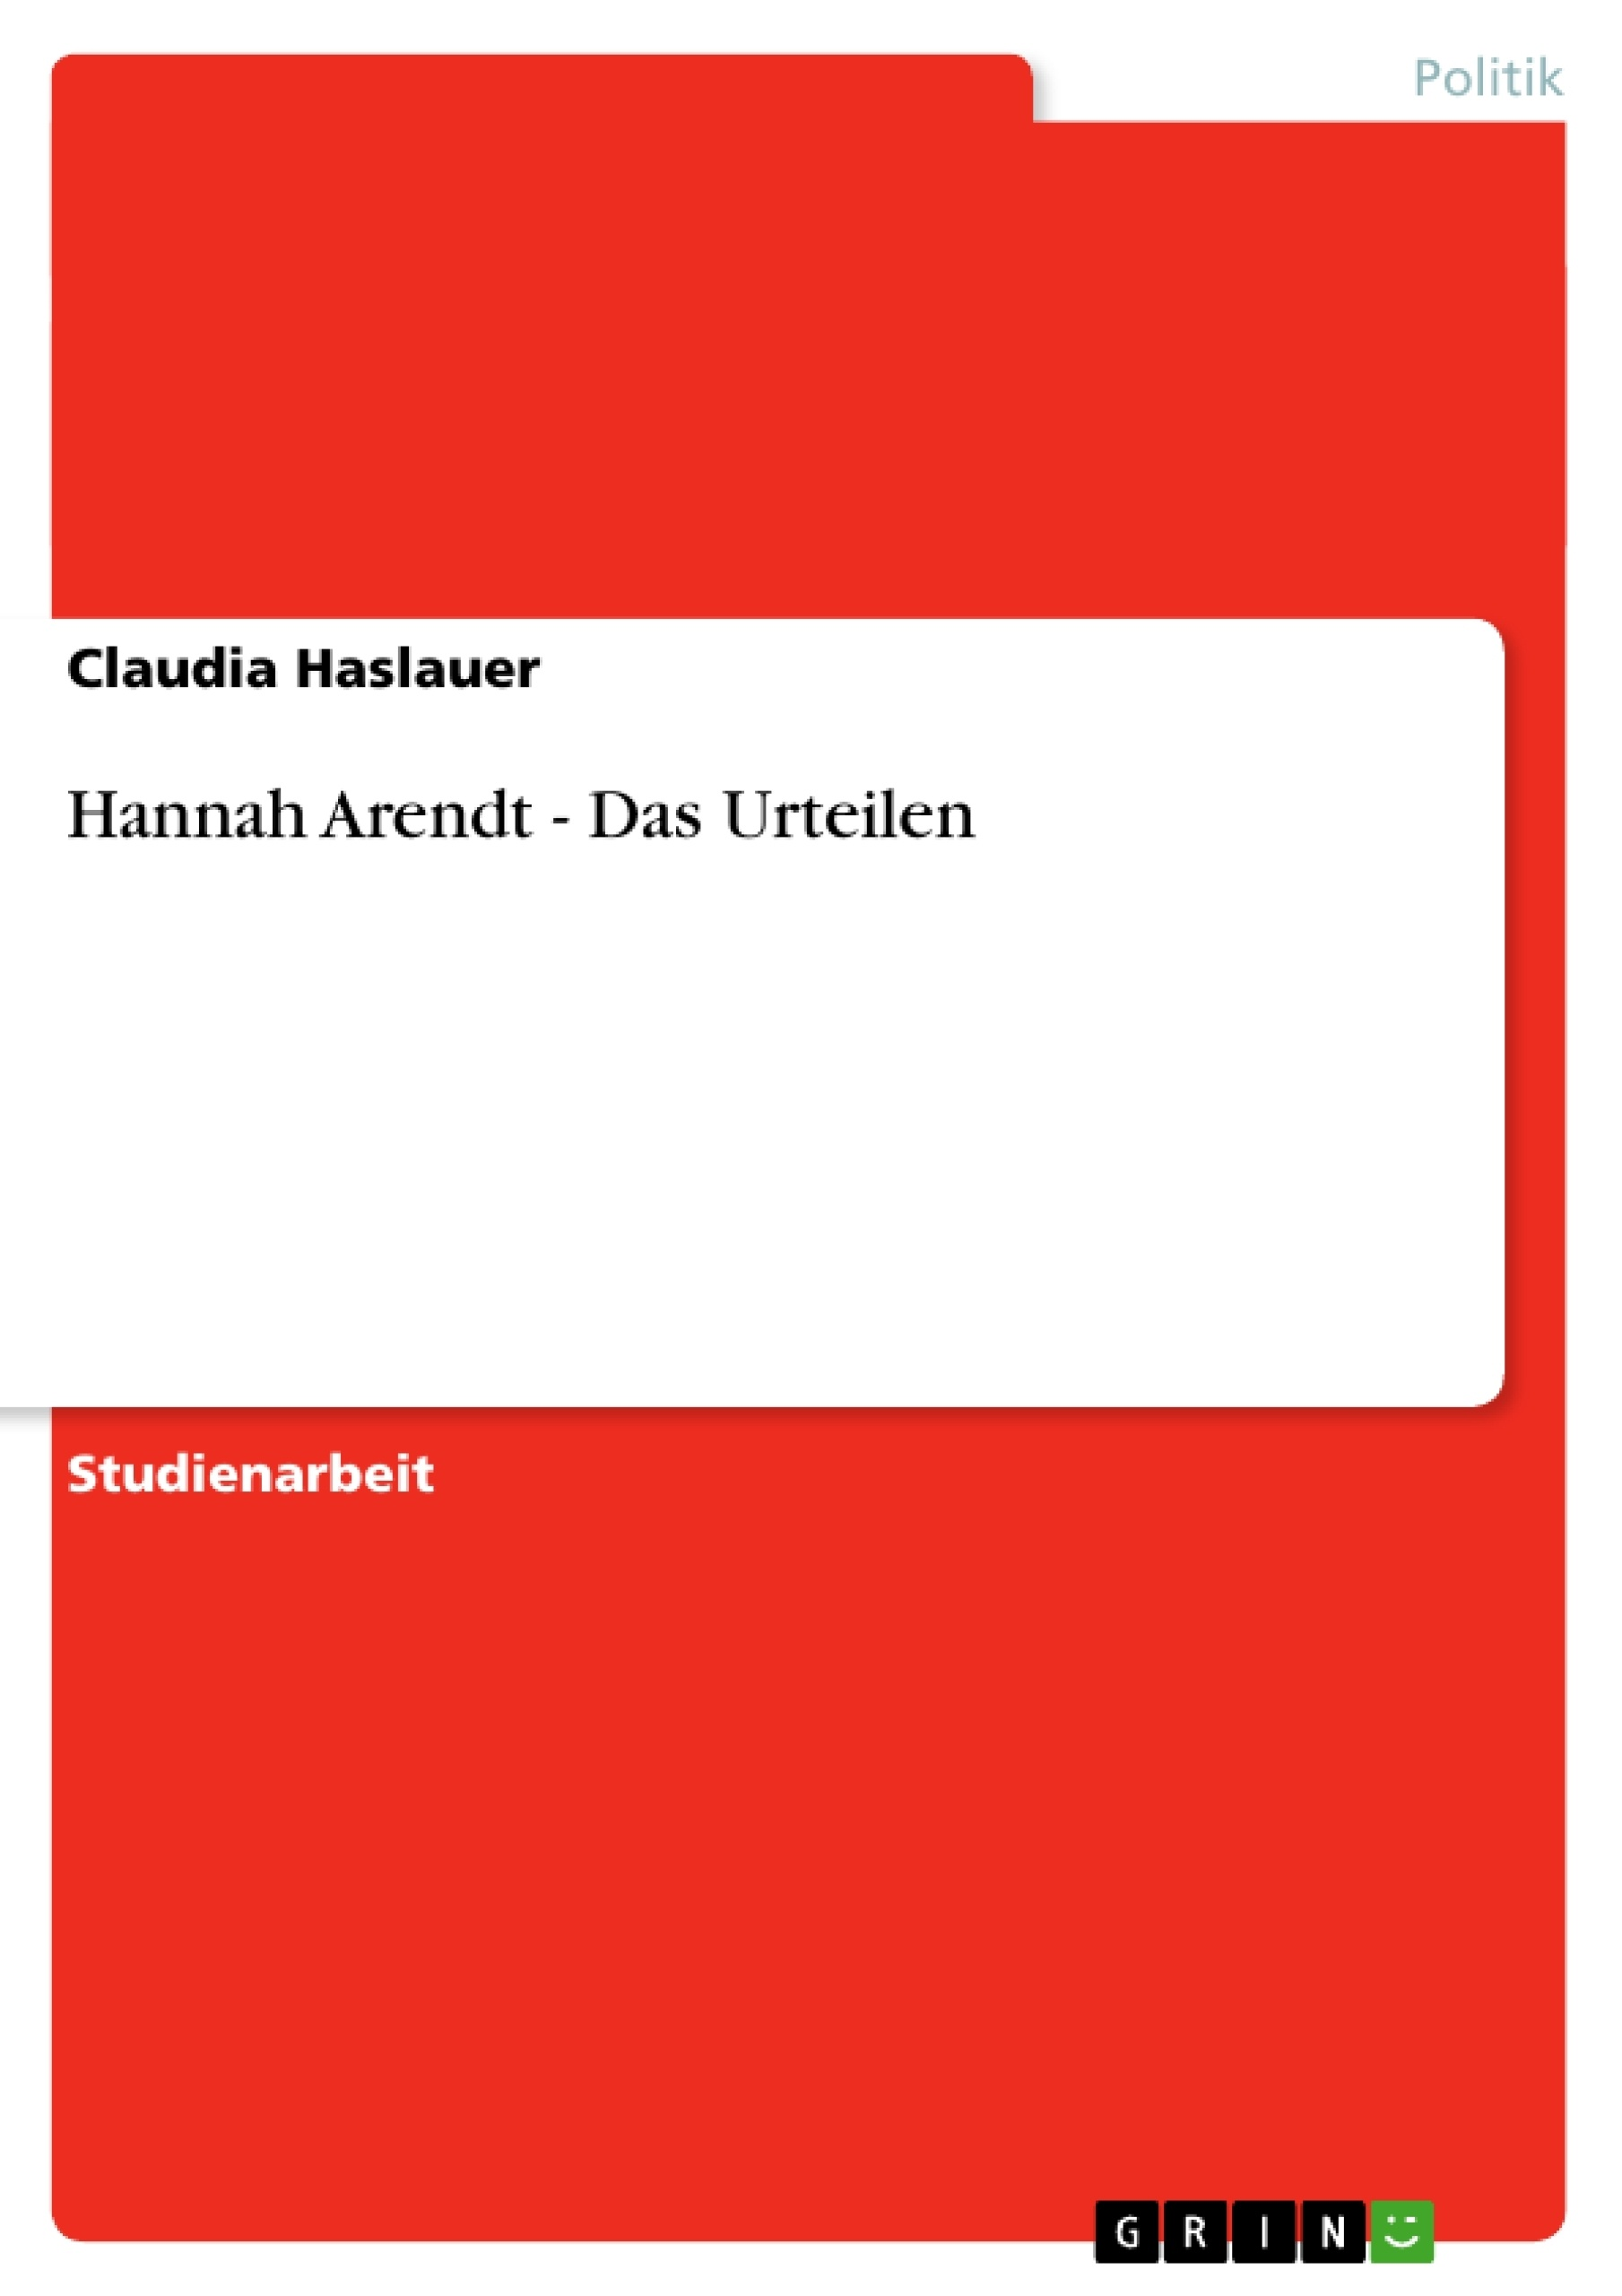 hannah arendt politische essays In the preface to her 1968 collection of essays, men in dark times, hannah arendt wrote: even in the darkest of times we have the right to expect some illumination.